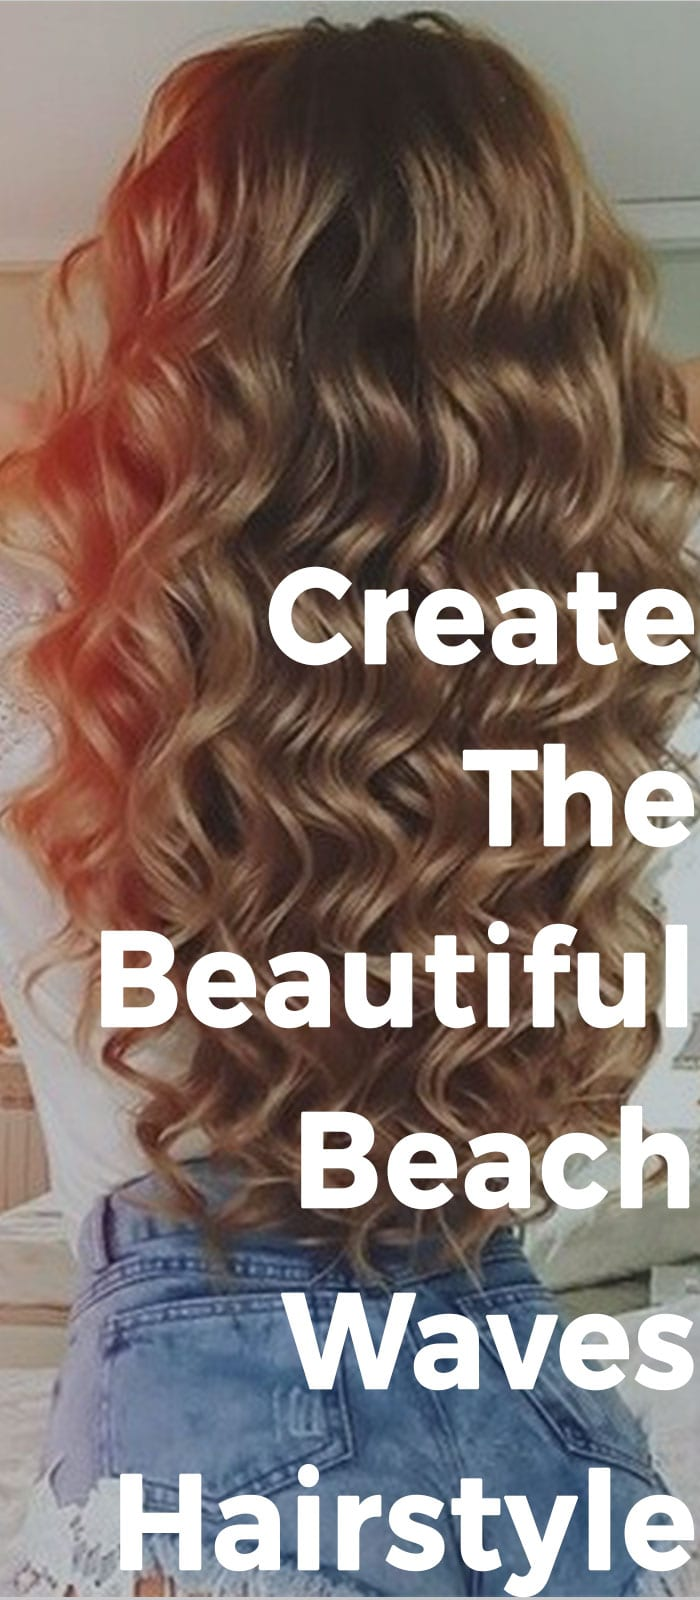 Create The Beautiful Beach Waves Hairstyle